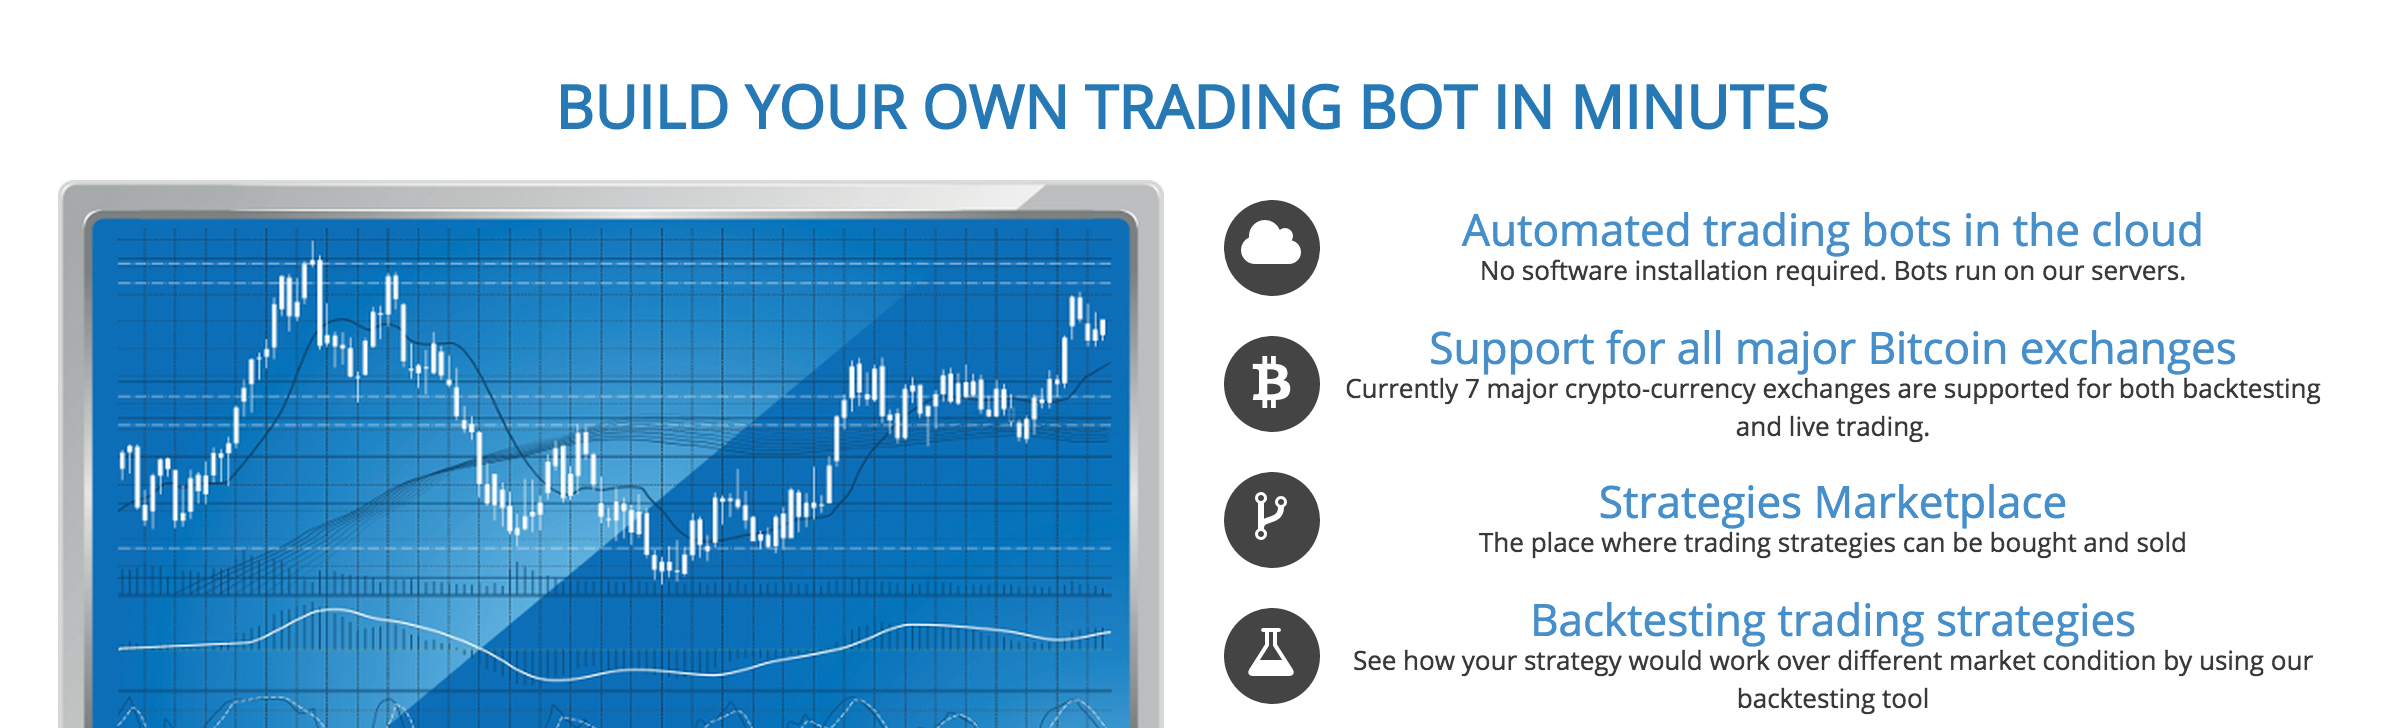 how do i build a cryptocurrency bot